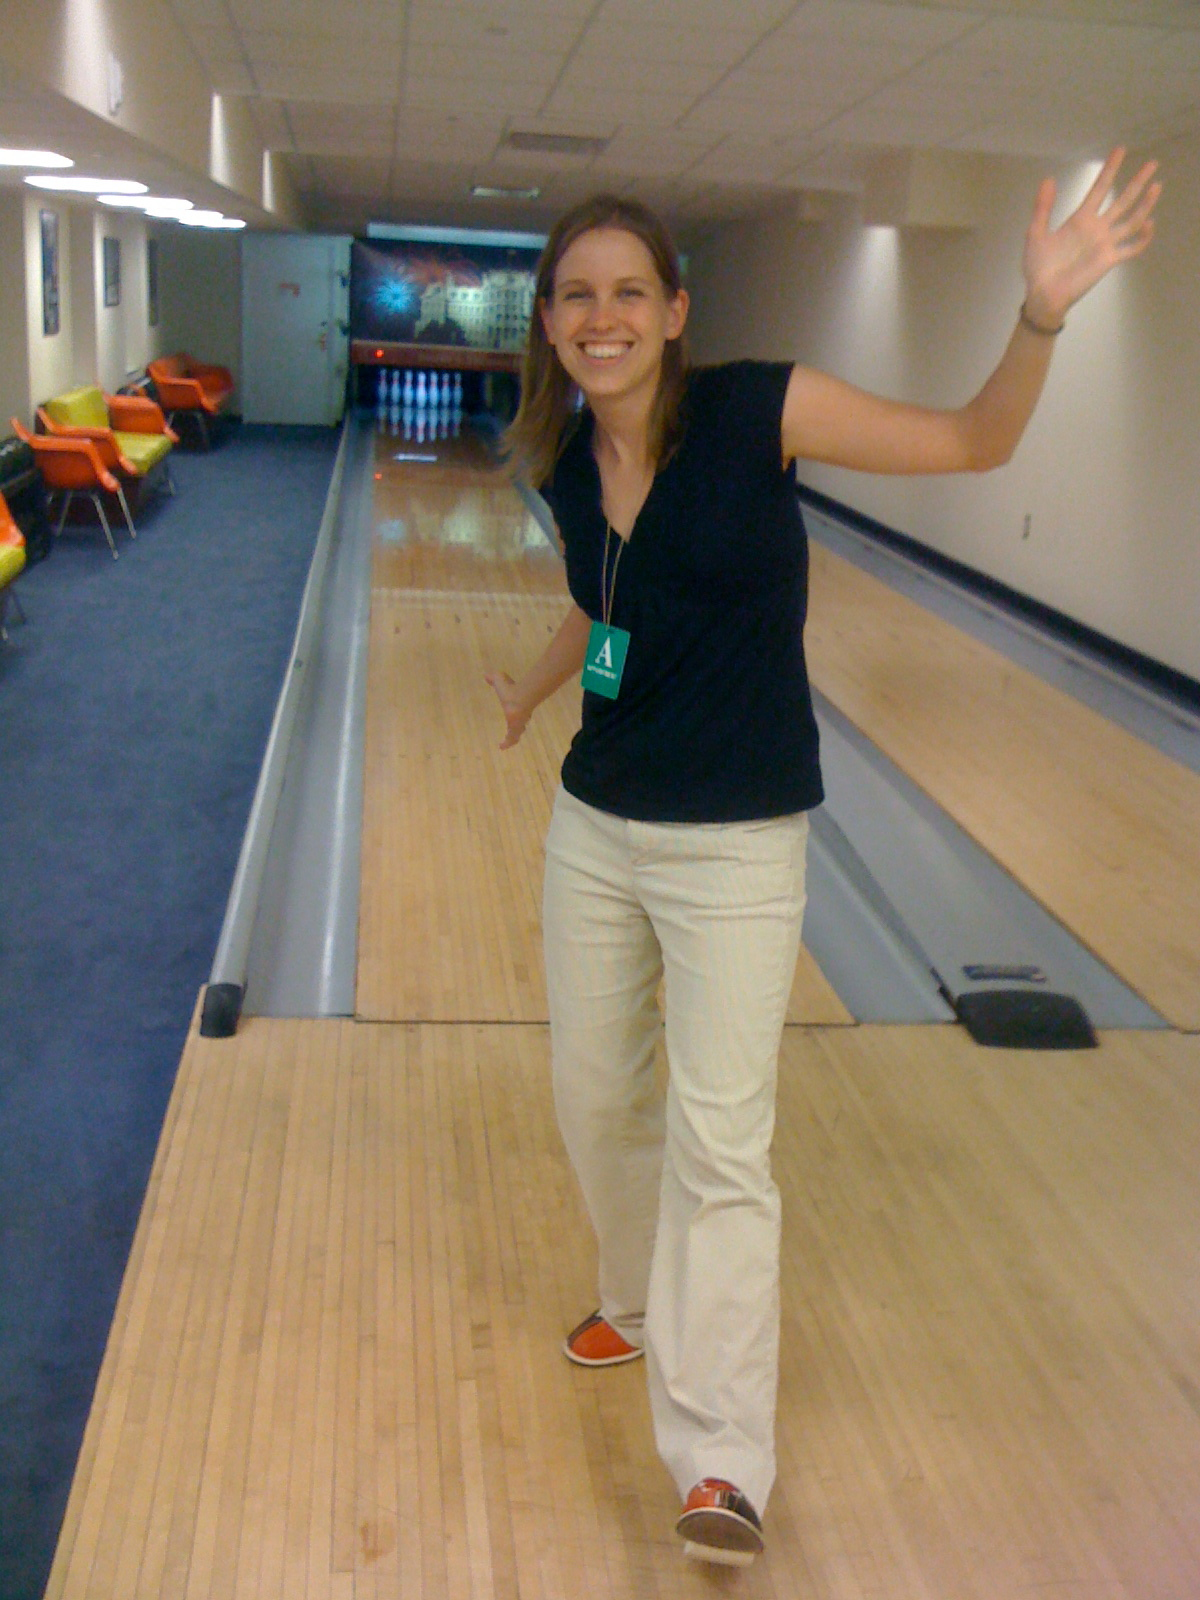 Awesome White House Bowling Outfit Erin Miller